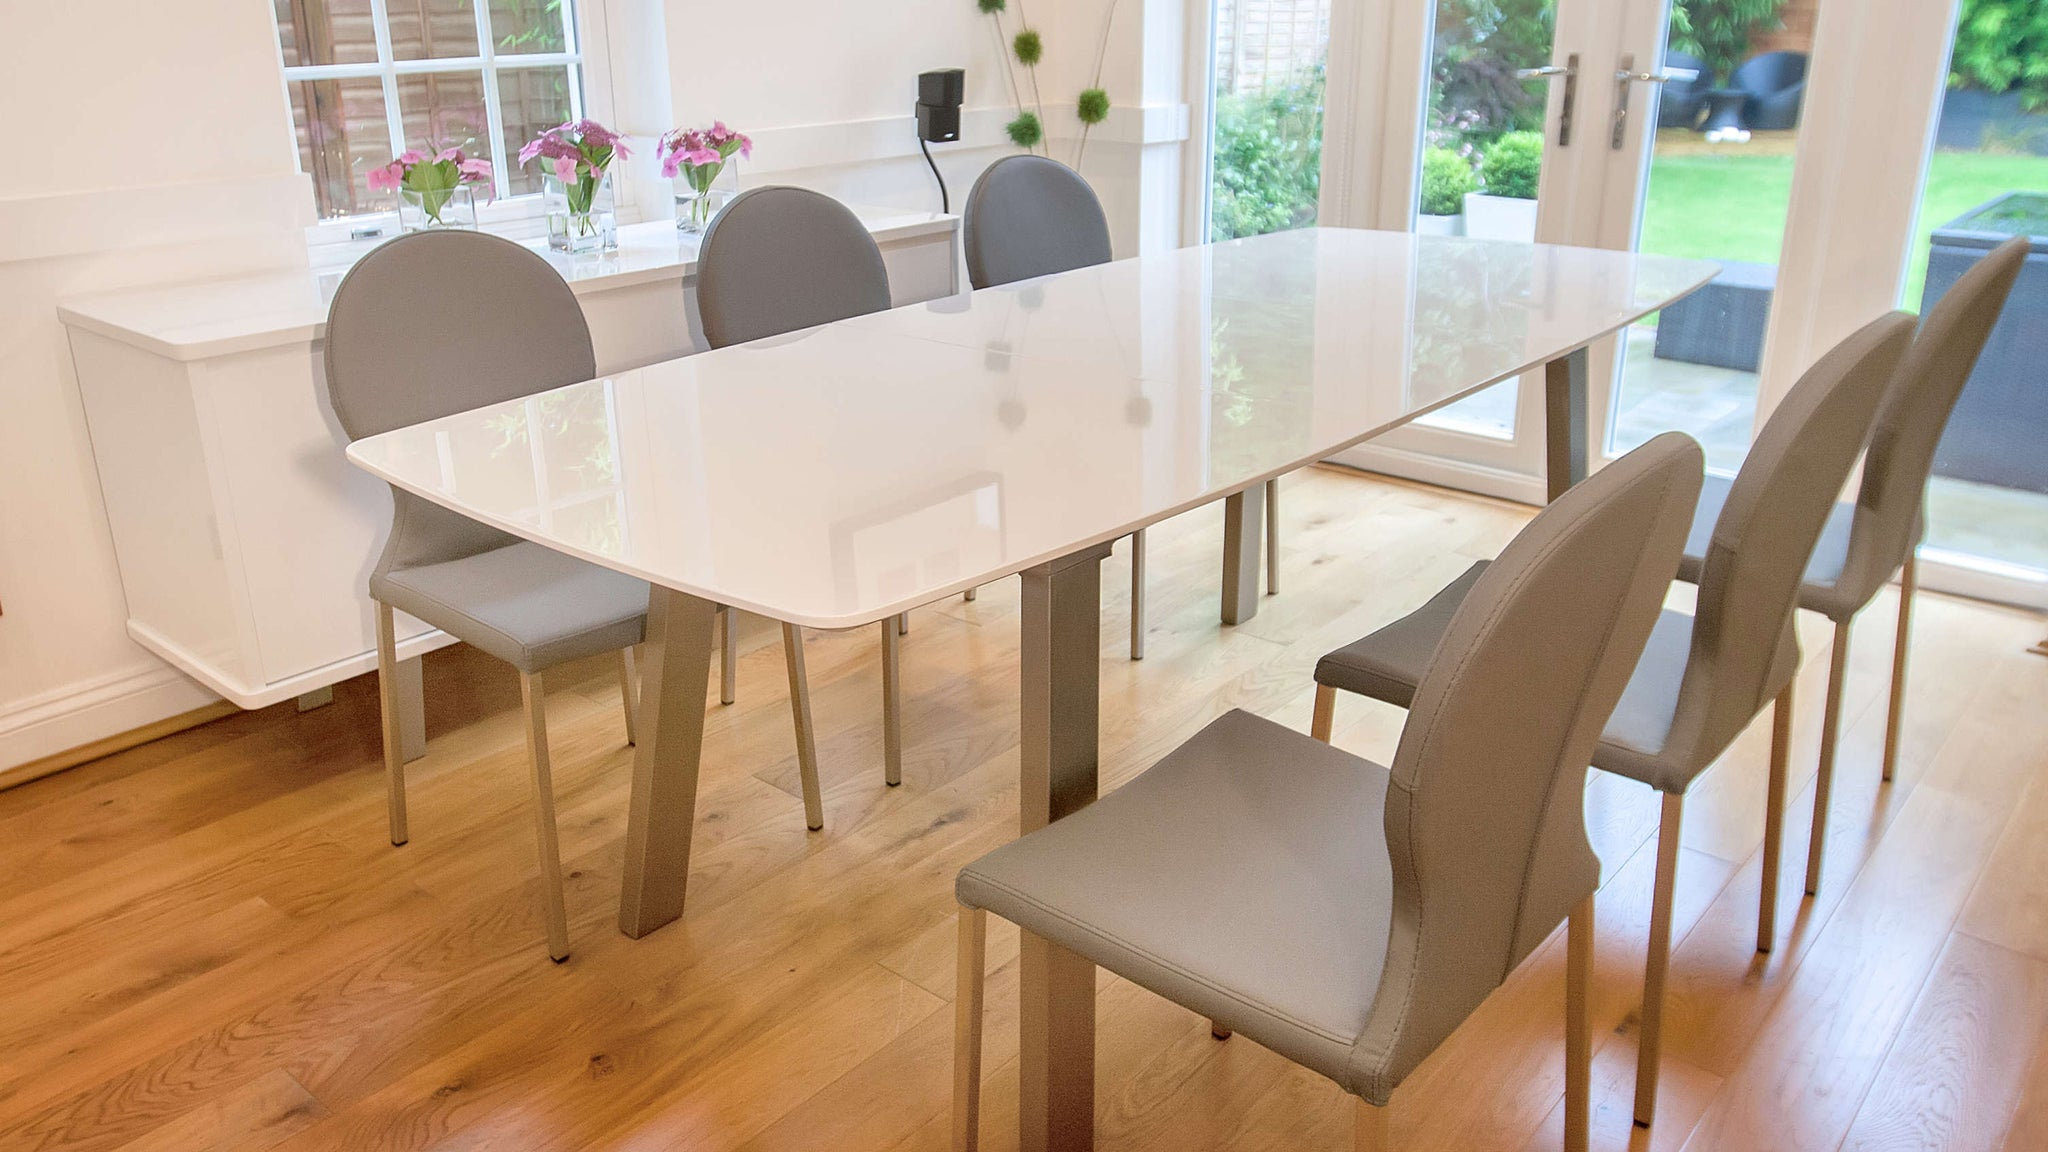 White Gloss Extending Dining Table and Grey Chairs